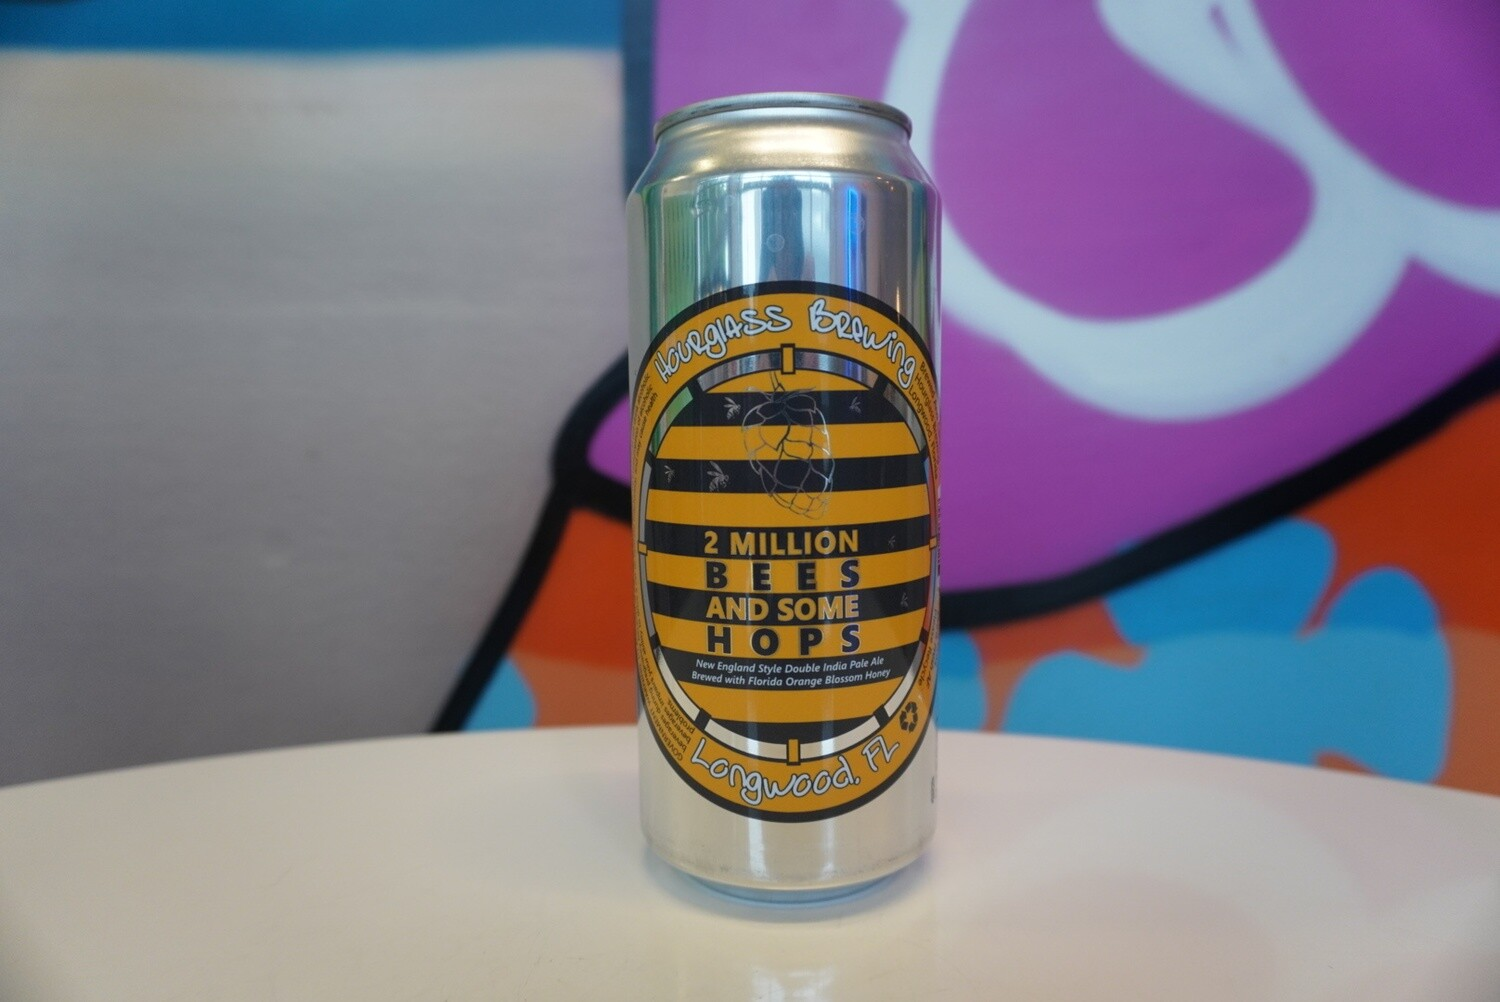 Hourglass Brewing - 2 Million Bees - Double New England IPA - 8.5% ABV - 16oz Can